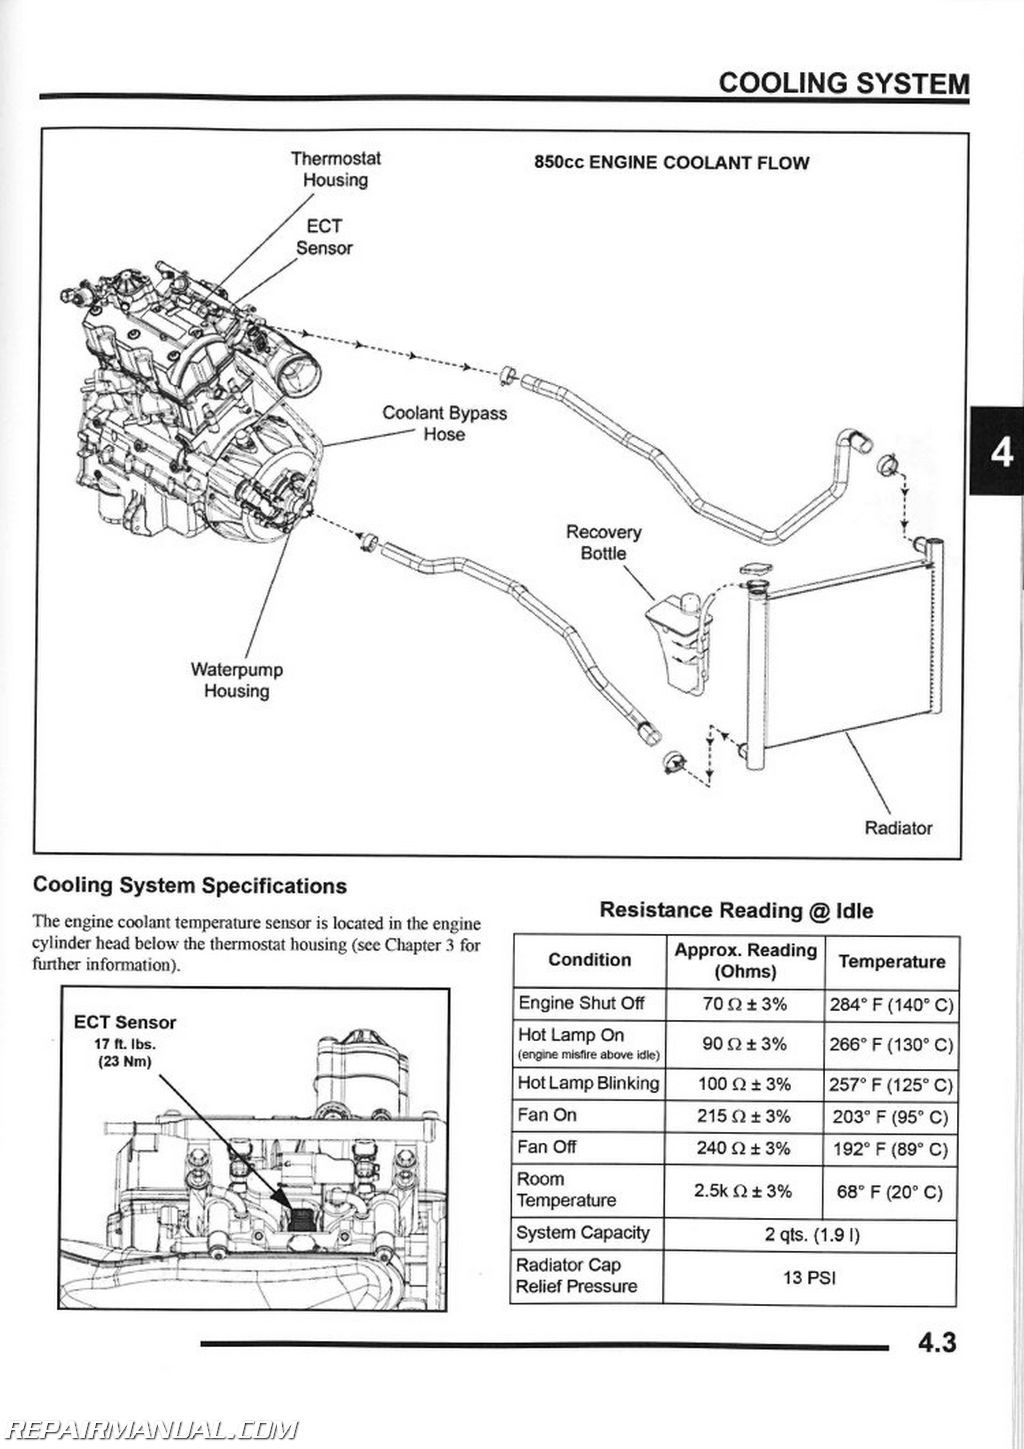 2009 Polaris Sportsman 850 Wiring Diagram Not Lossing Scrambler Xp Atv Service Manual Rh Repairmanual Com Pdf 1999 500